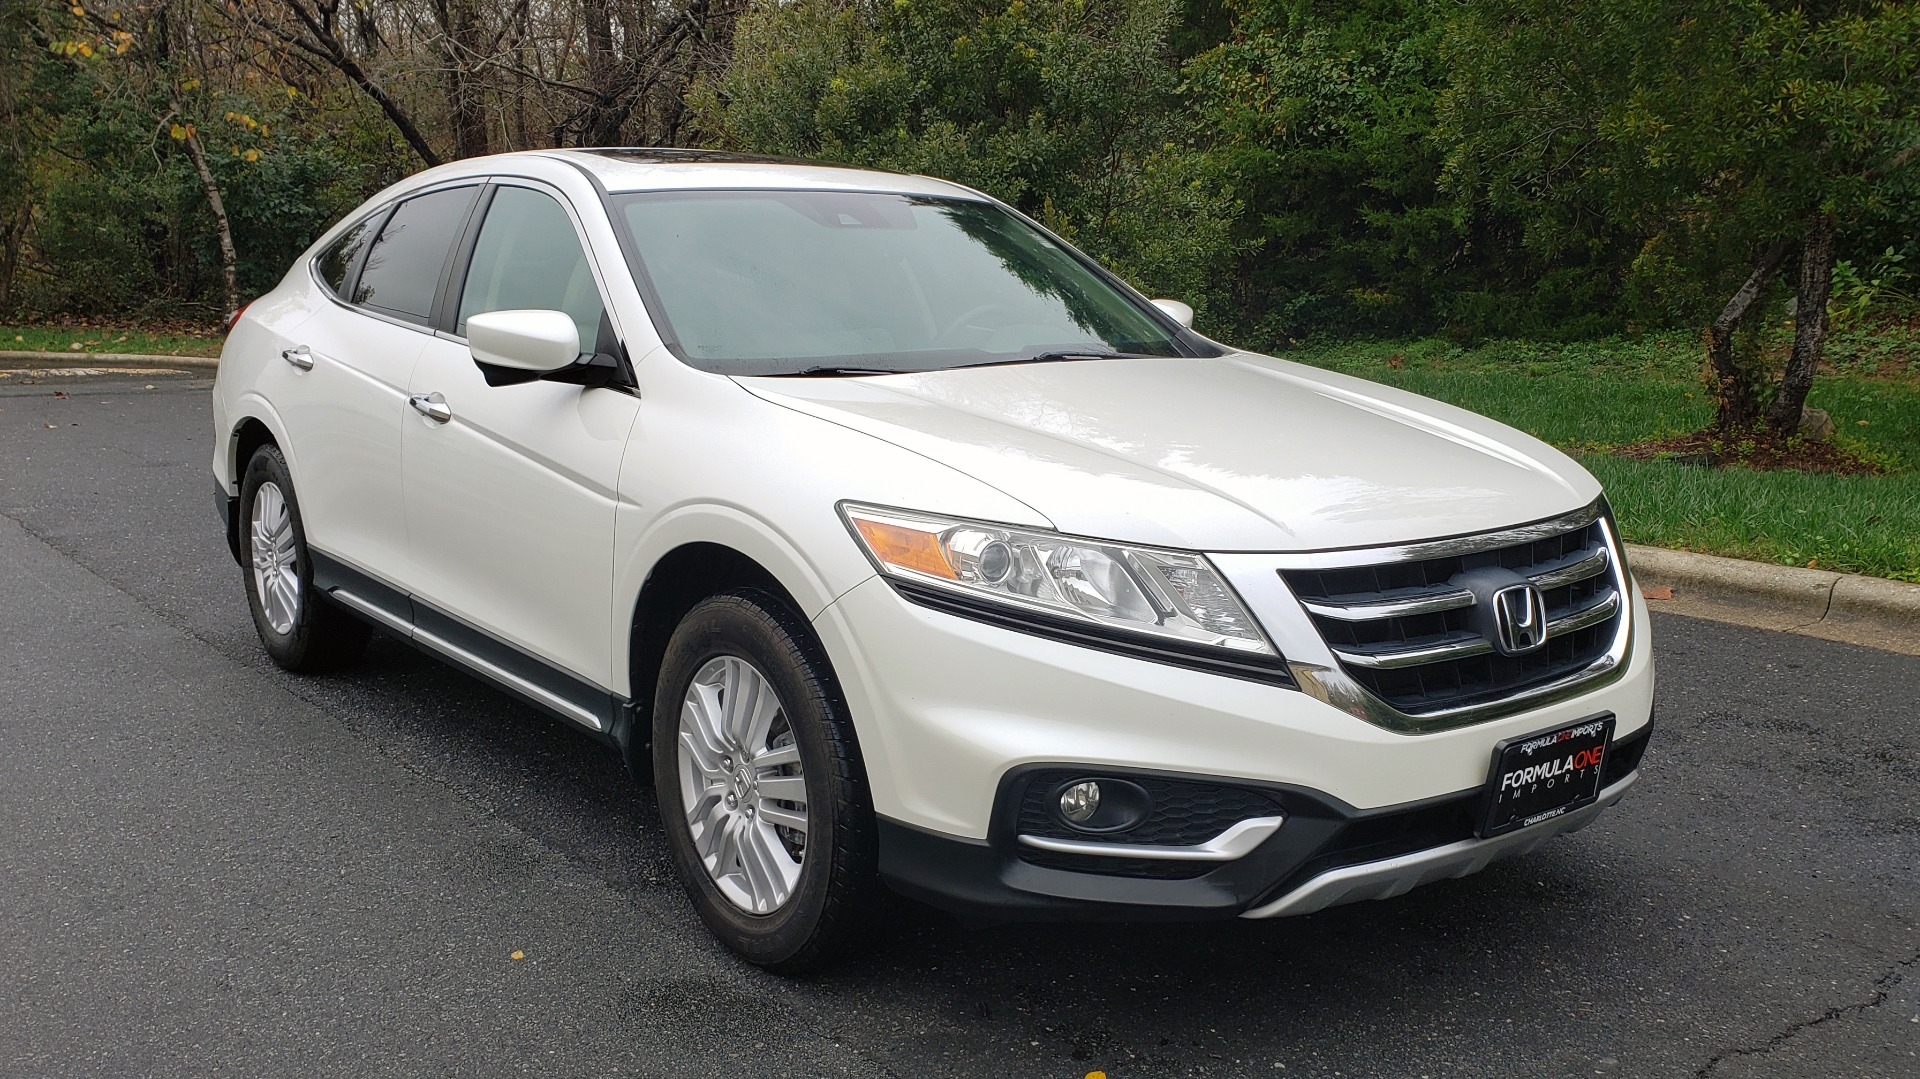 Used 2015 Honda CROSSTOUR EX-L 2WD / SUNROOF / REARVIEW / 17-IN ALLOY WHEELS for sale $11,595 at Formula Imports in Charlotte NC 28227 4